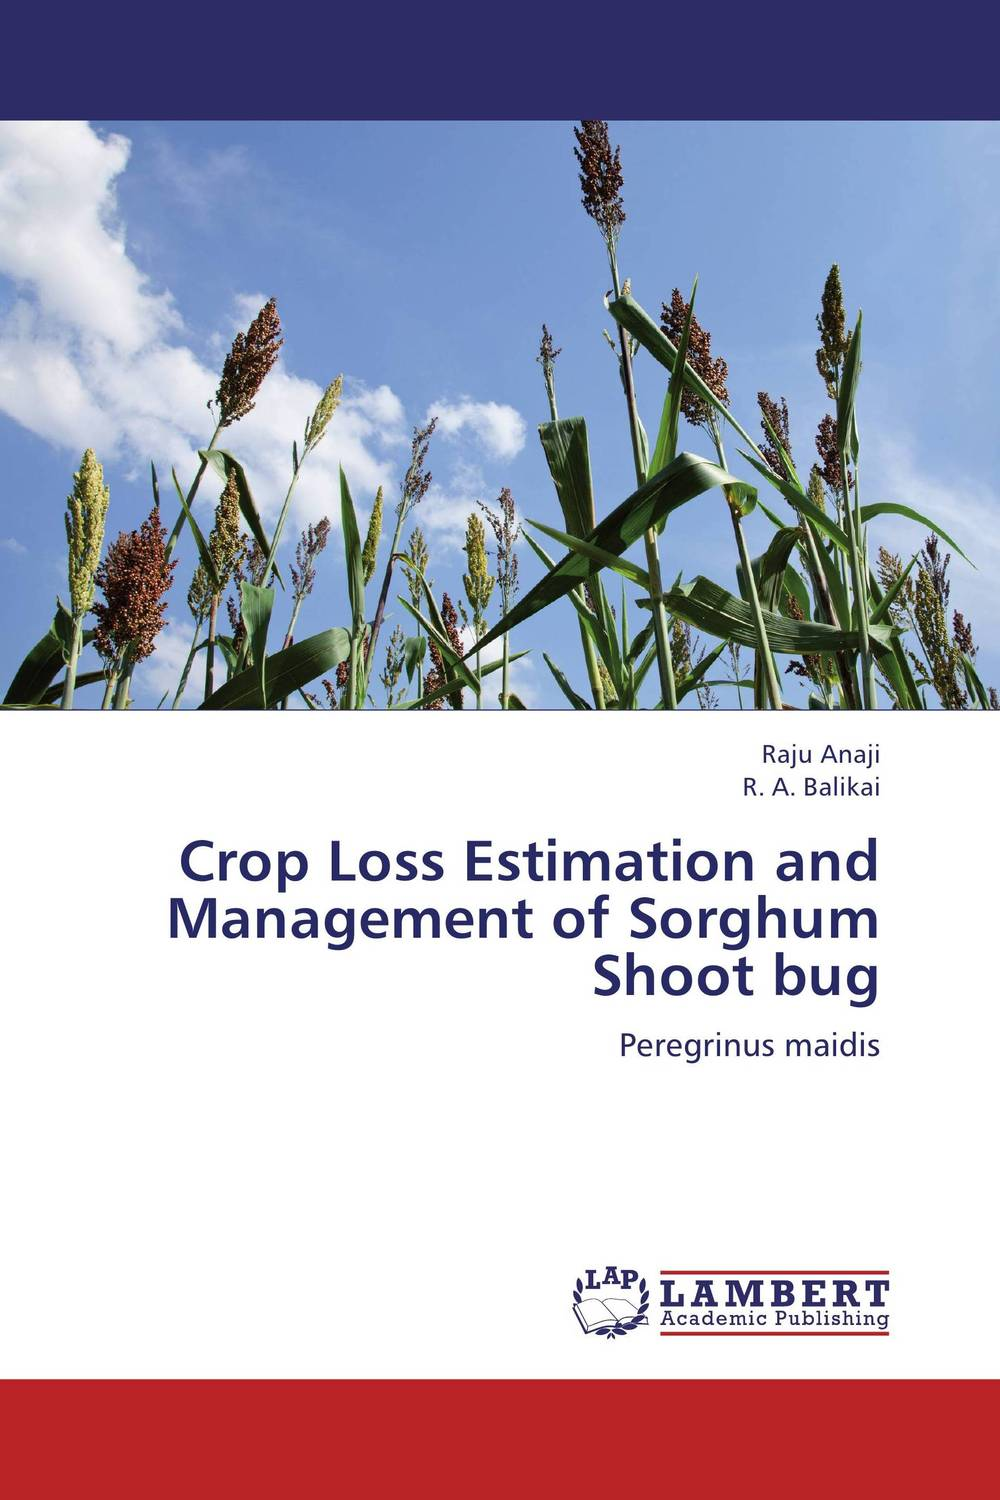 Crop Loss Estimation and Management of Sorghum Shoot bug against the grain